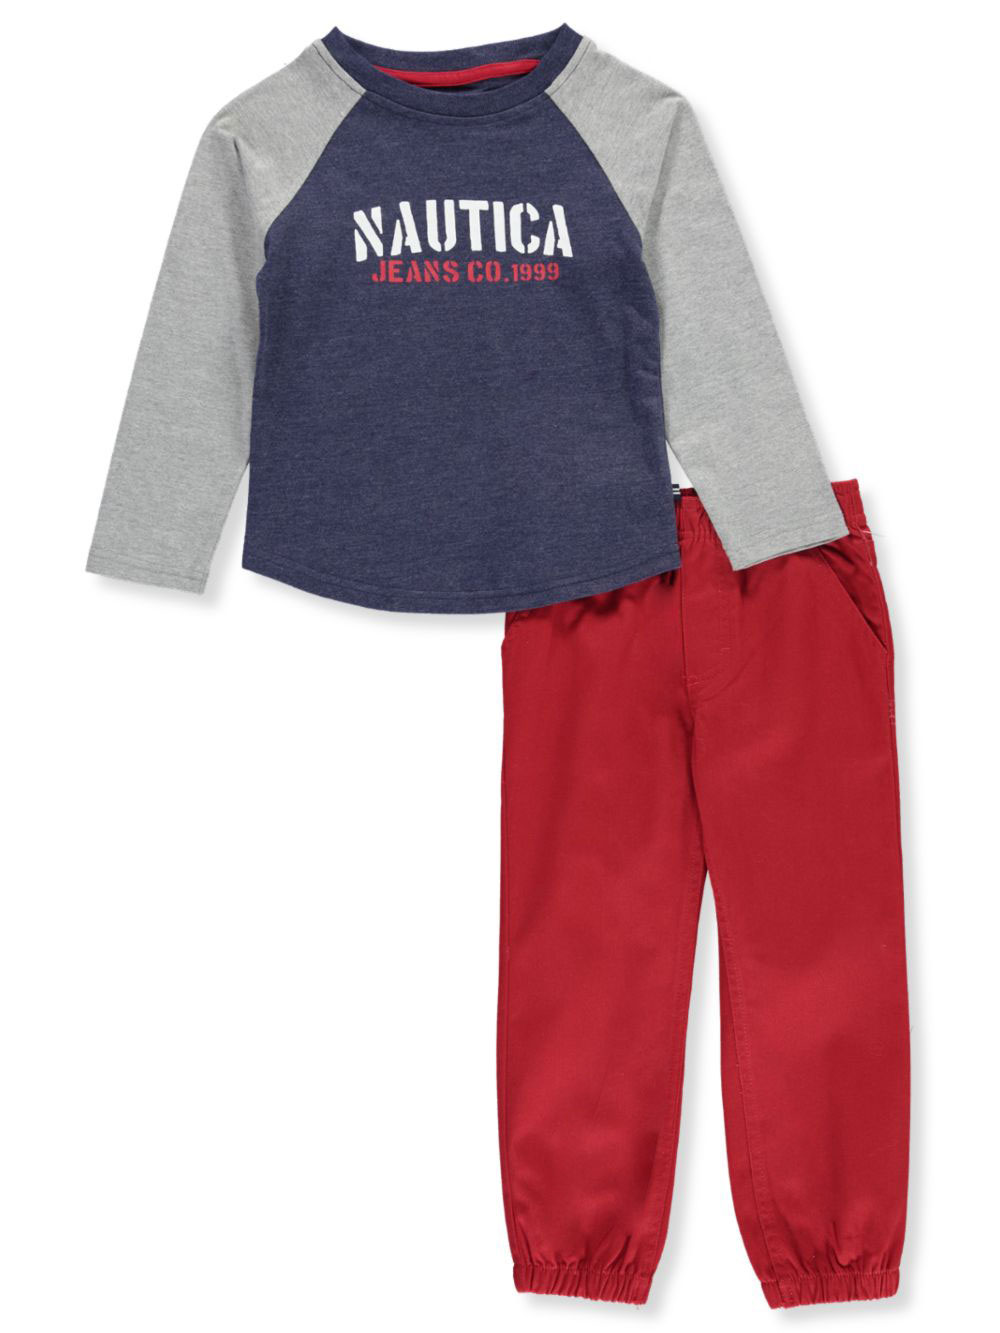 Nautica Boys Toddler 2 Pieces Pants Set